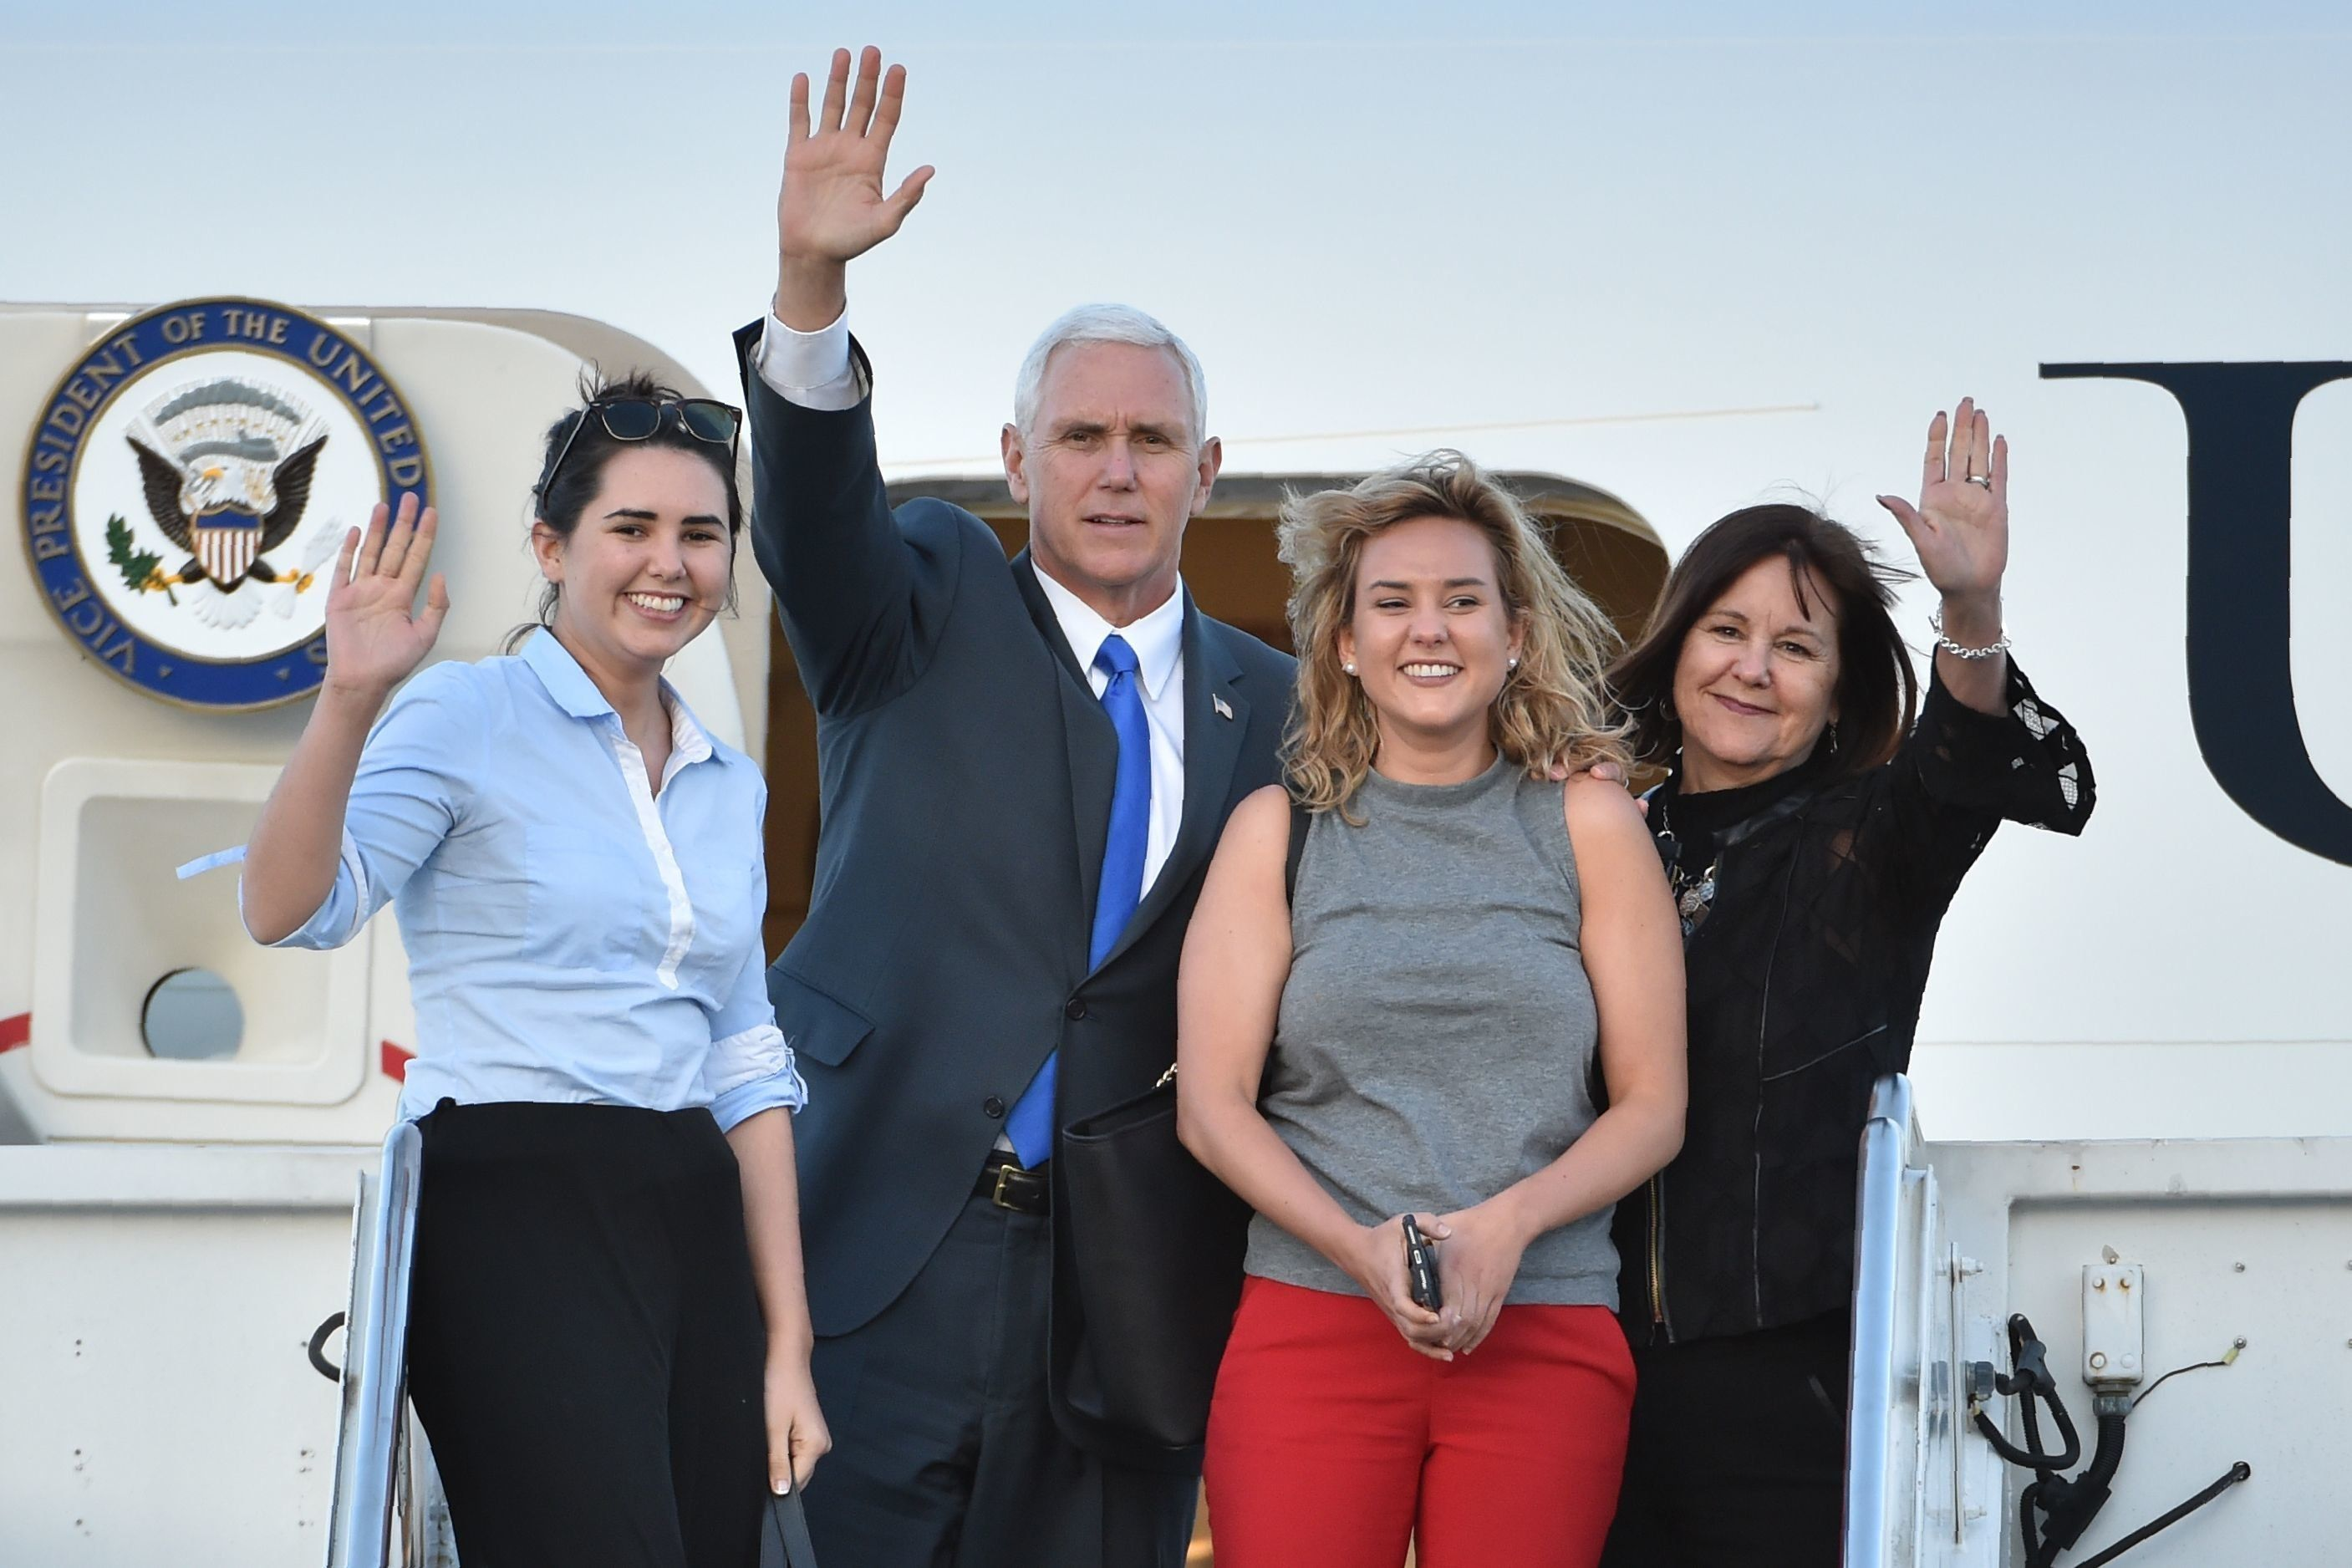 US Vice President Mike Pence (2nd L), his wife Karen (R), and their two daughters Audrey (L) and Charlotte (2nd R) wave as they depart Japan from the US naval air facility in Atsugi, Kanagawa prefecture on April 19, 2017. Pence is in the region to reassure allies fretting over Pyongyang's quickening missile programme, and its apparent readiness to carry out another banned nuclear test in its quest to develop an atomic weapon that can hit the US mainland.  / AFP PHOTO / Kazuhiro NOGI        (Photo credit should read KAZUHIRO NOGI/AFP/Getty Images)